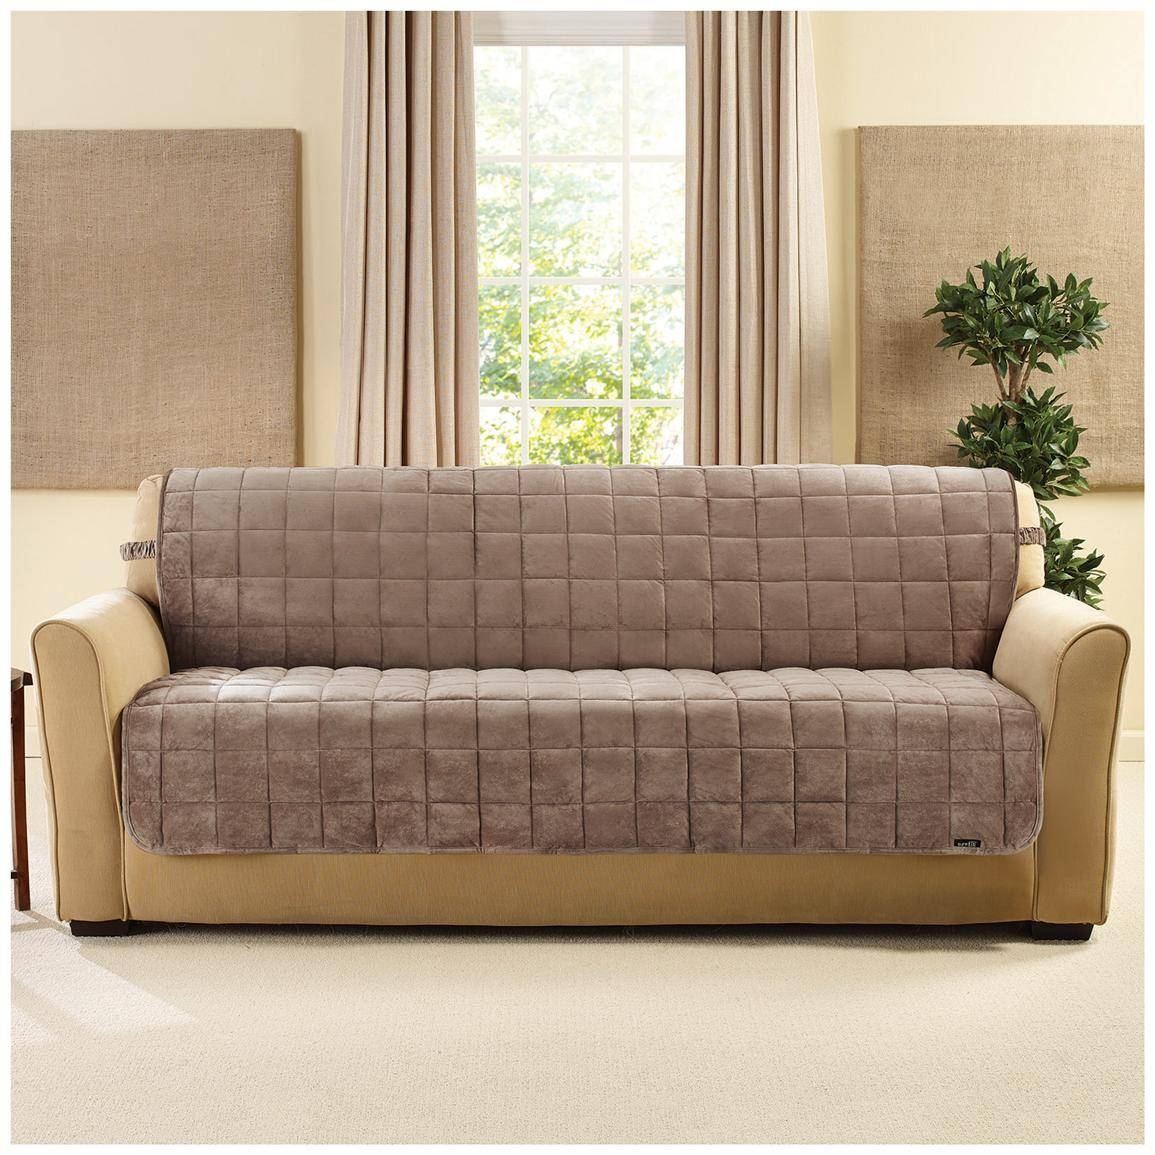 Sure Fit® Quilted Velvet Furniture Friend Armless Sofa Slipcover with regard to Armless Couch Slipcovers (Image 15 of 15)